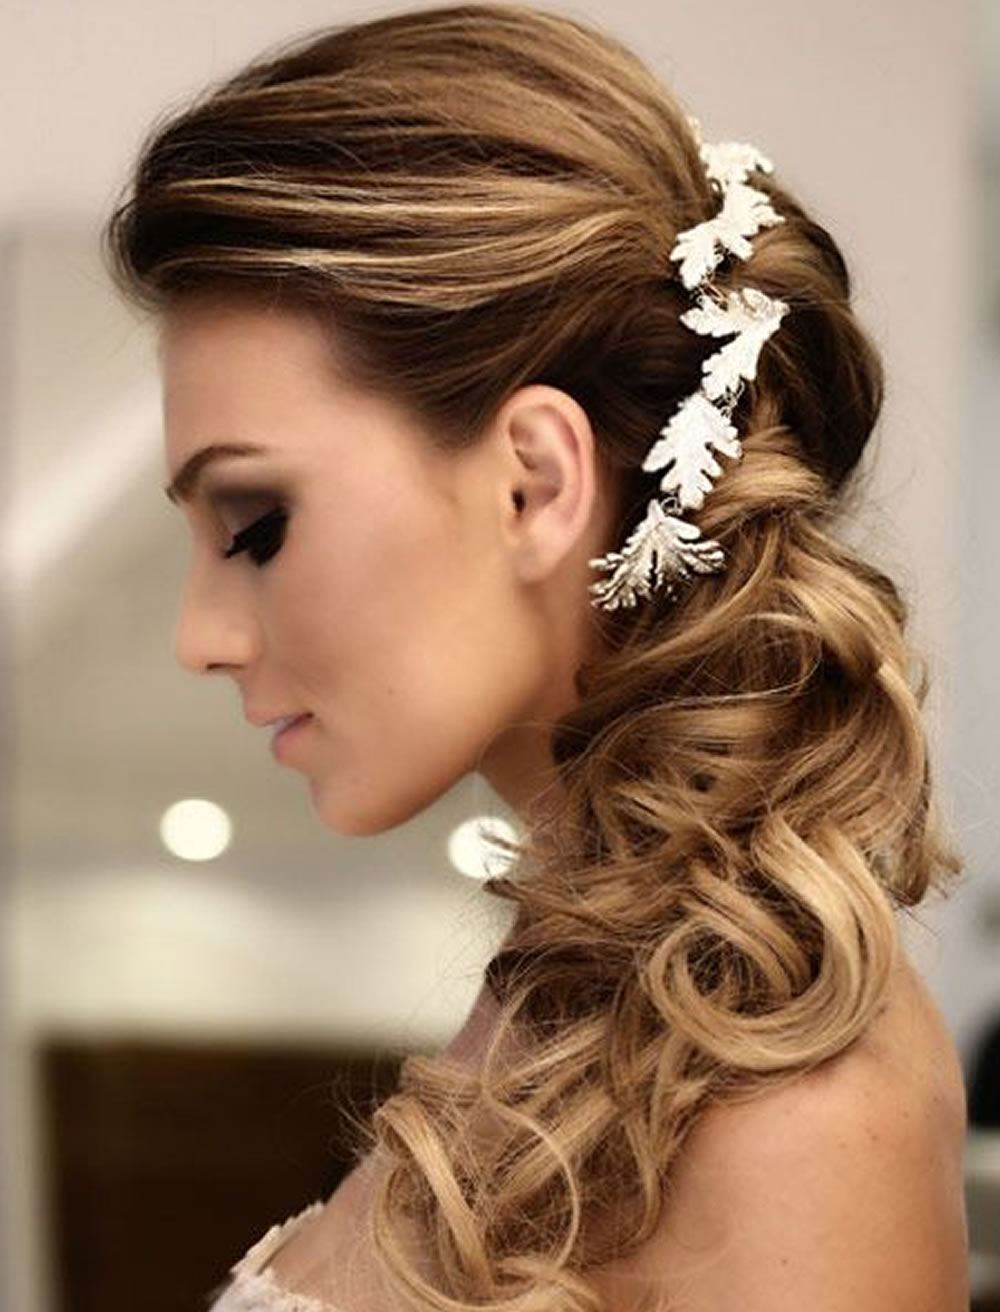 Very stylish wedding hairstyles for long hair 2018 2019 wedding hairstyles for long hair summer 2018 2019 junglespirit Choice Image